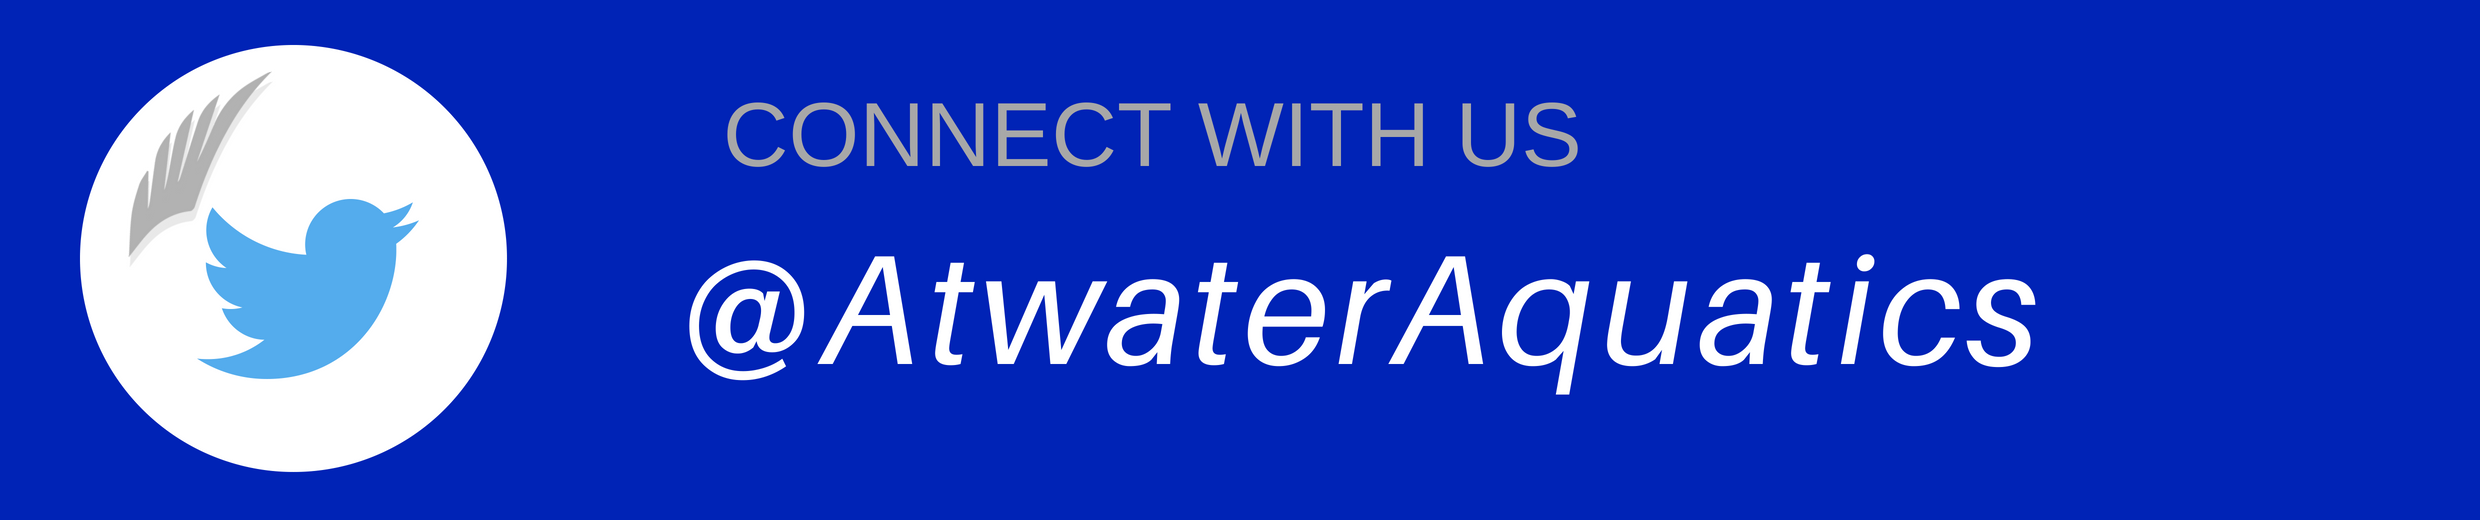 Connect with Us @AtwaterAquatics